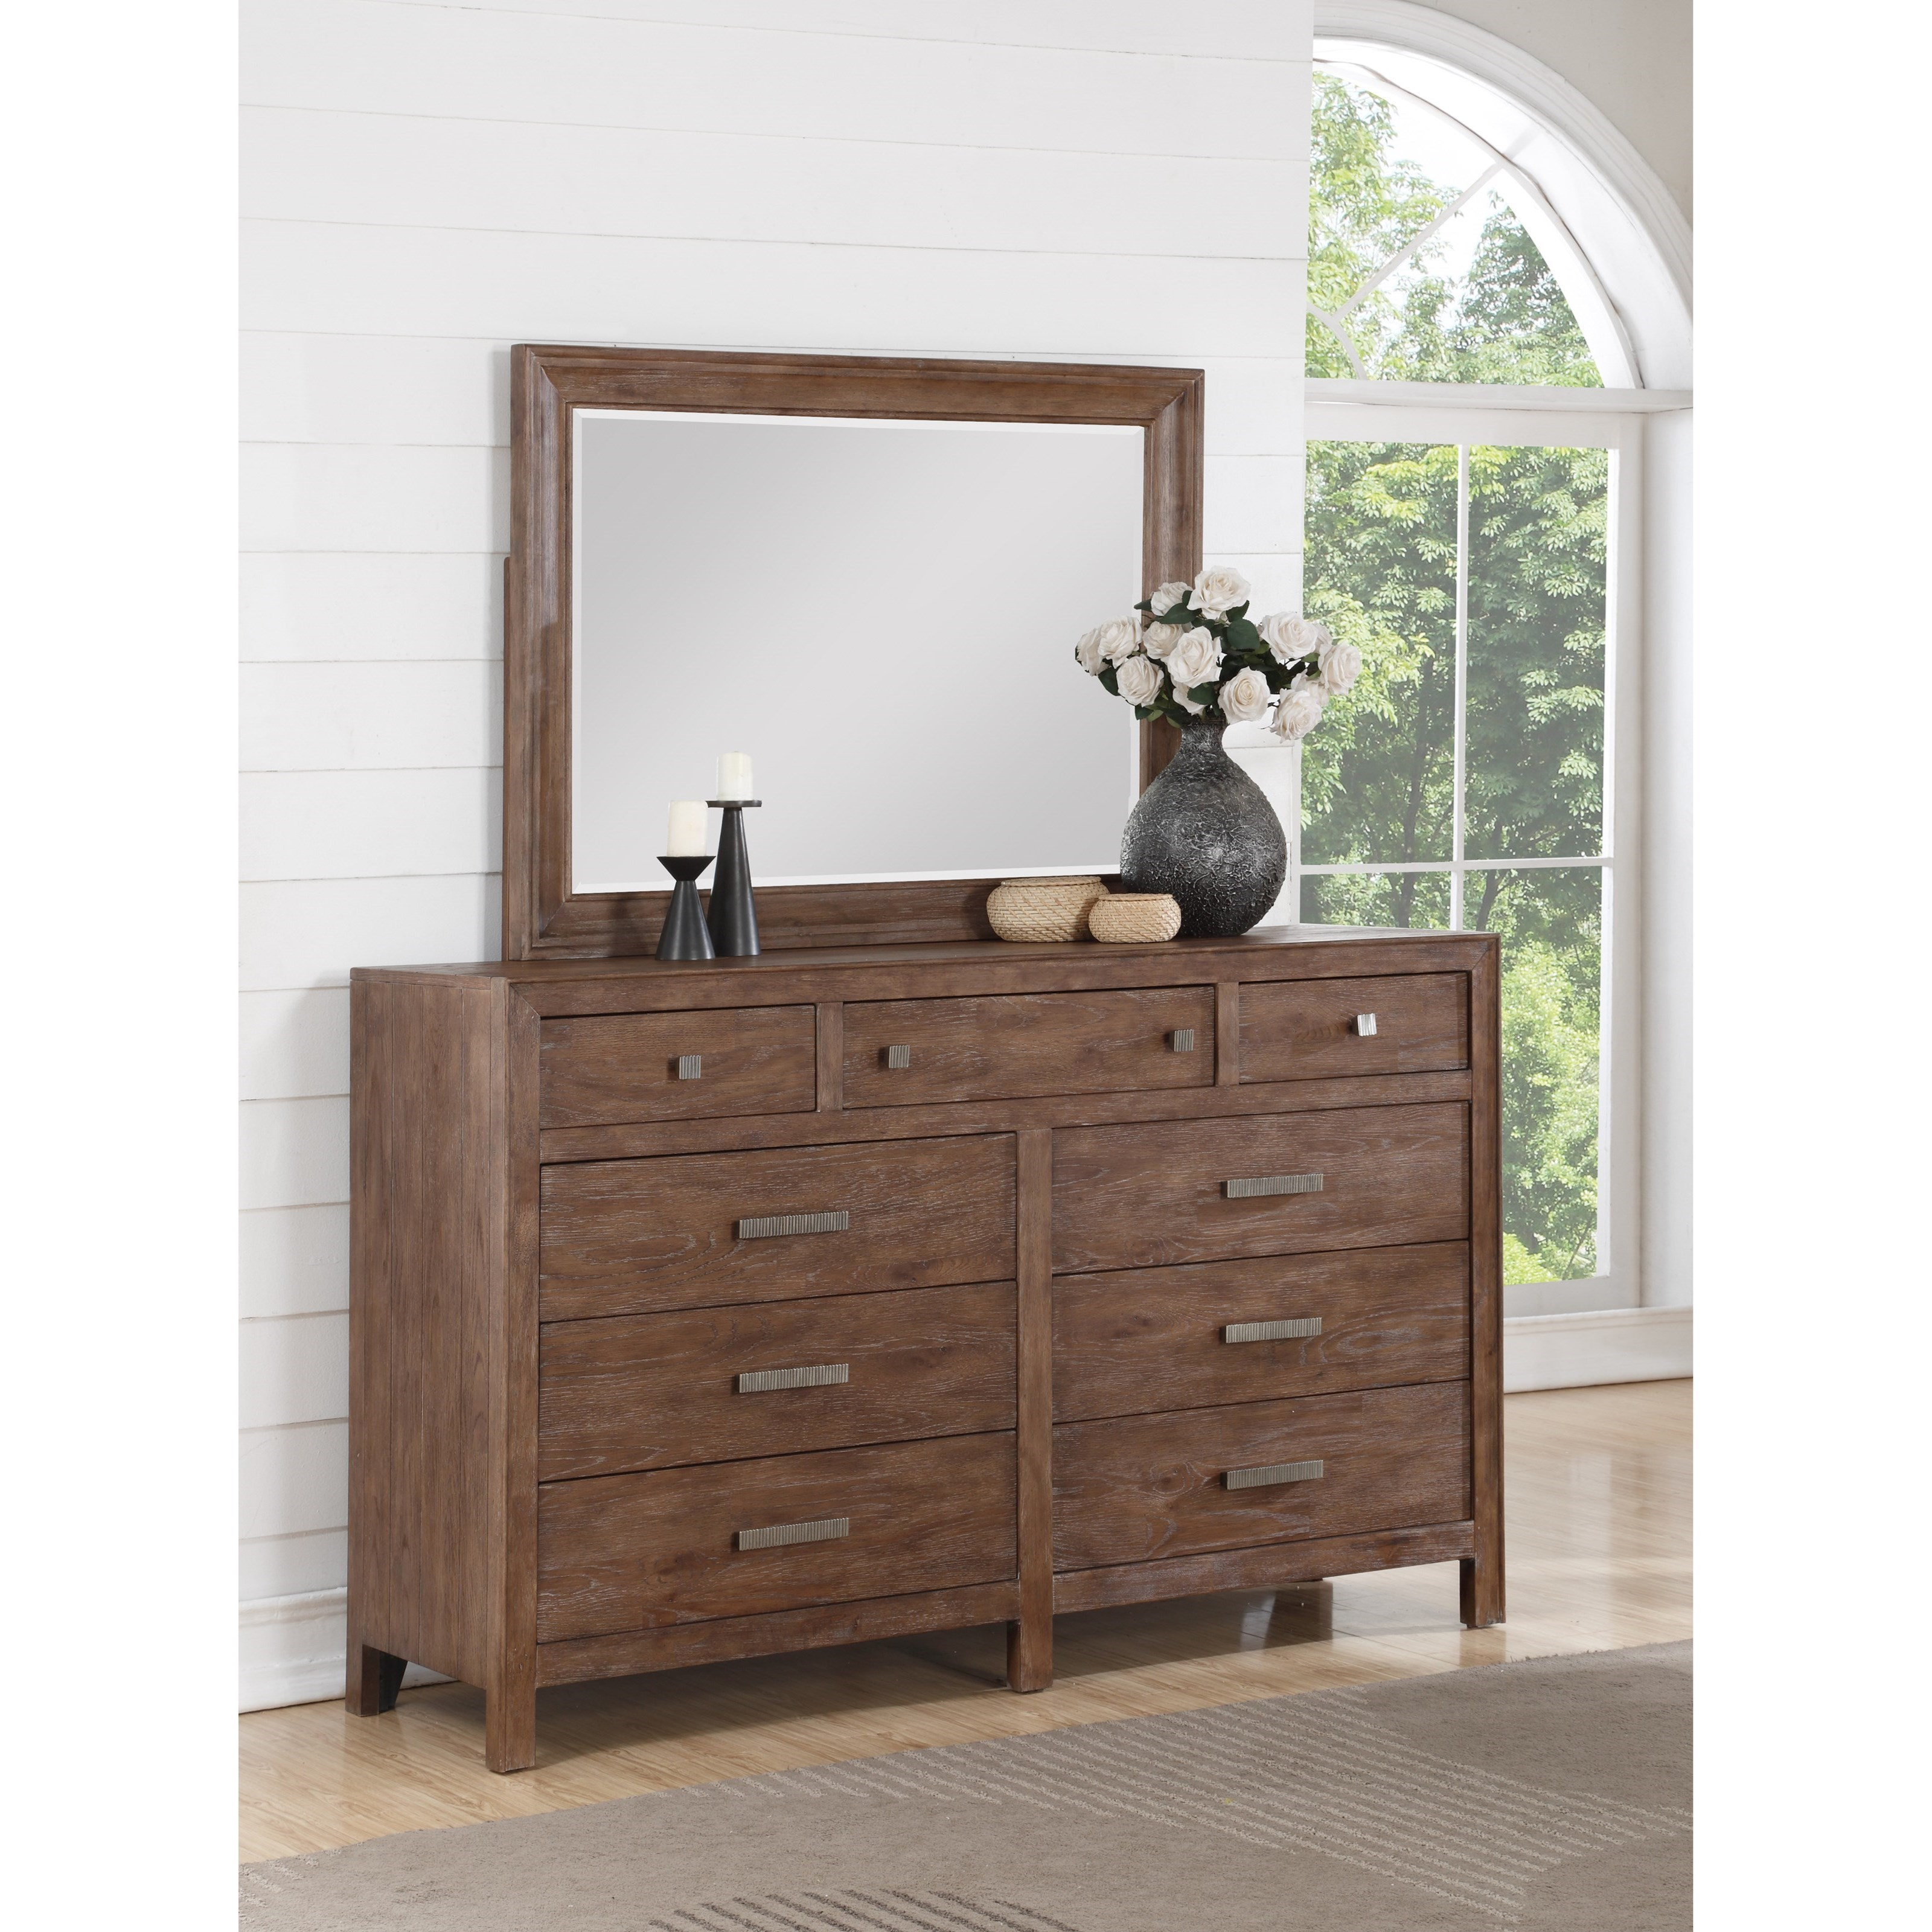 tone ferndale finish with wilson ashley drawers birch blaine bay bedroom design signature bellingham aimwell and dresser by item yhd collections chest s furniture two lynden